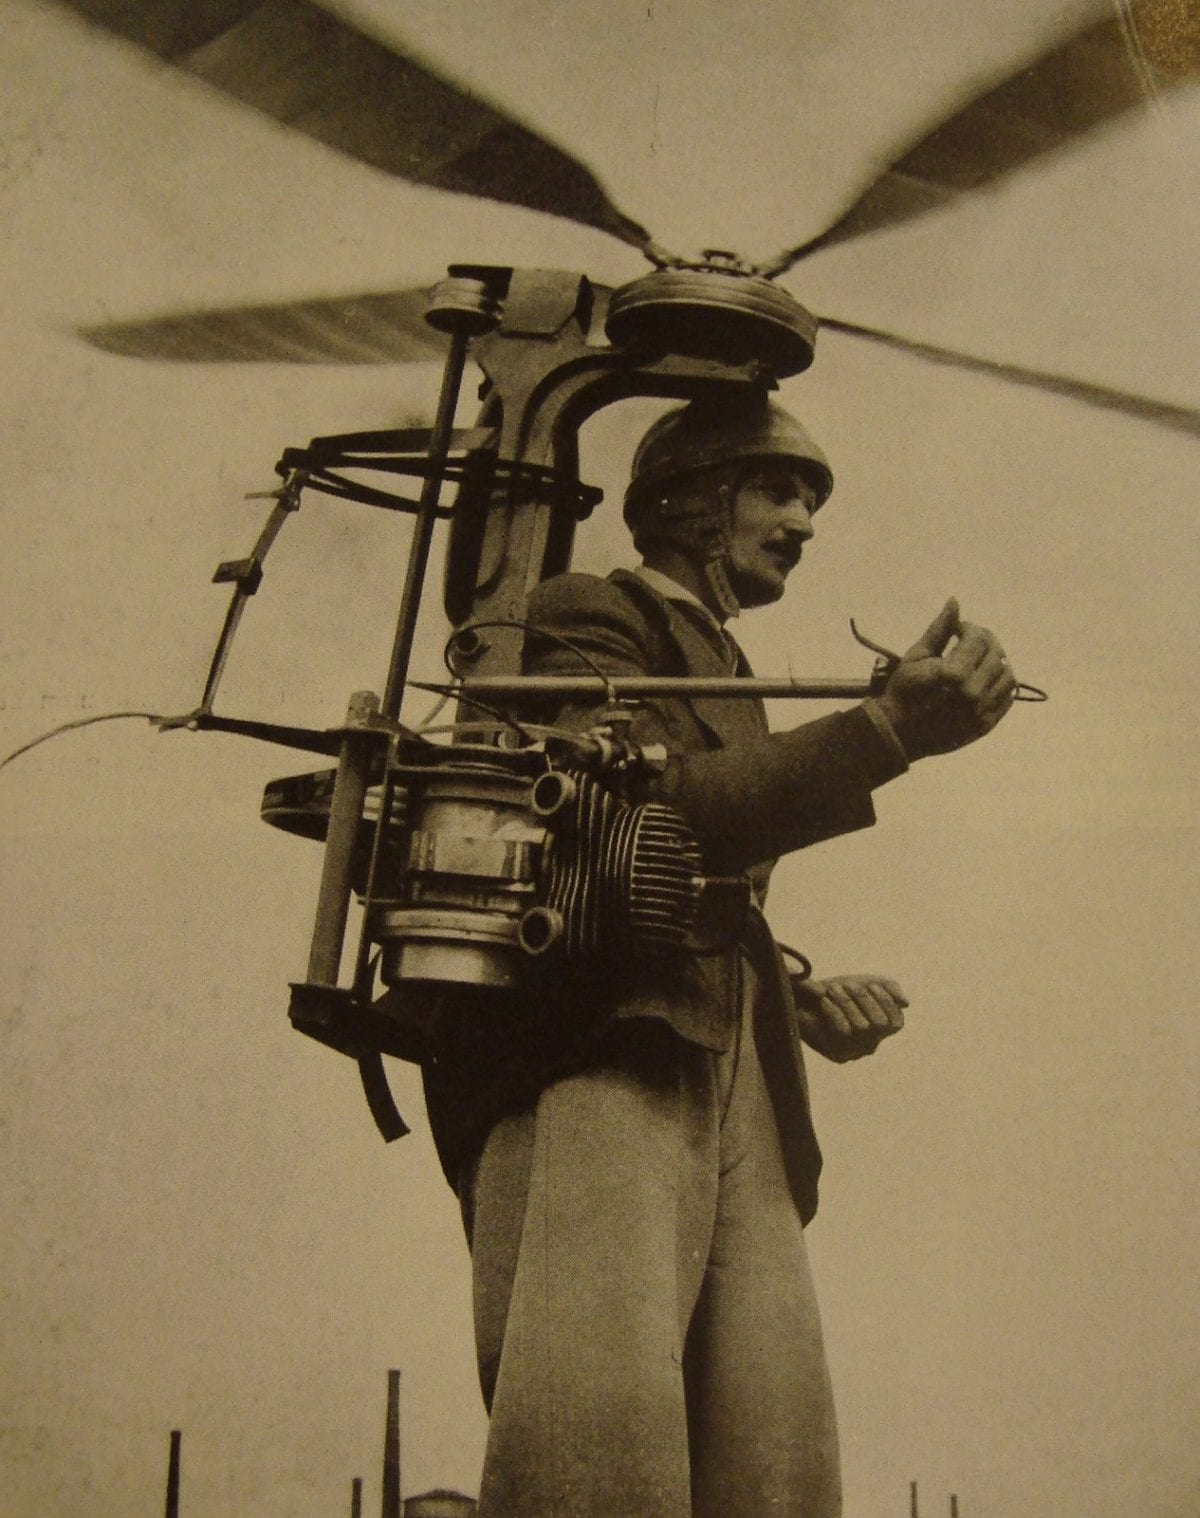 Man helicopter suit